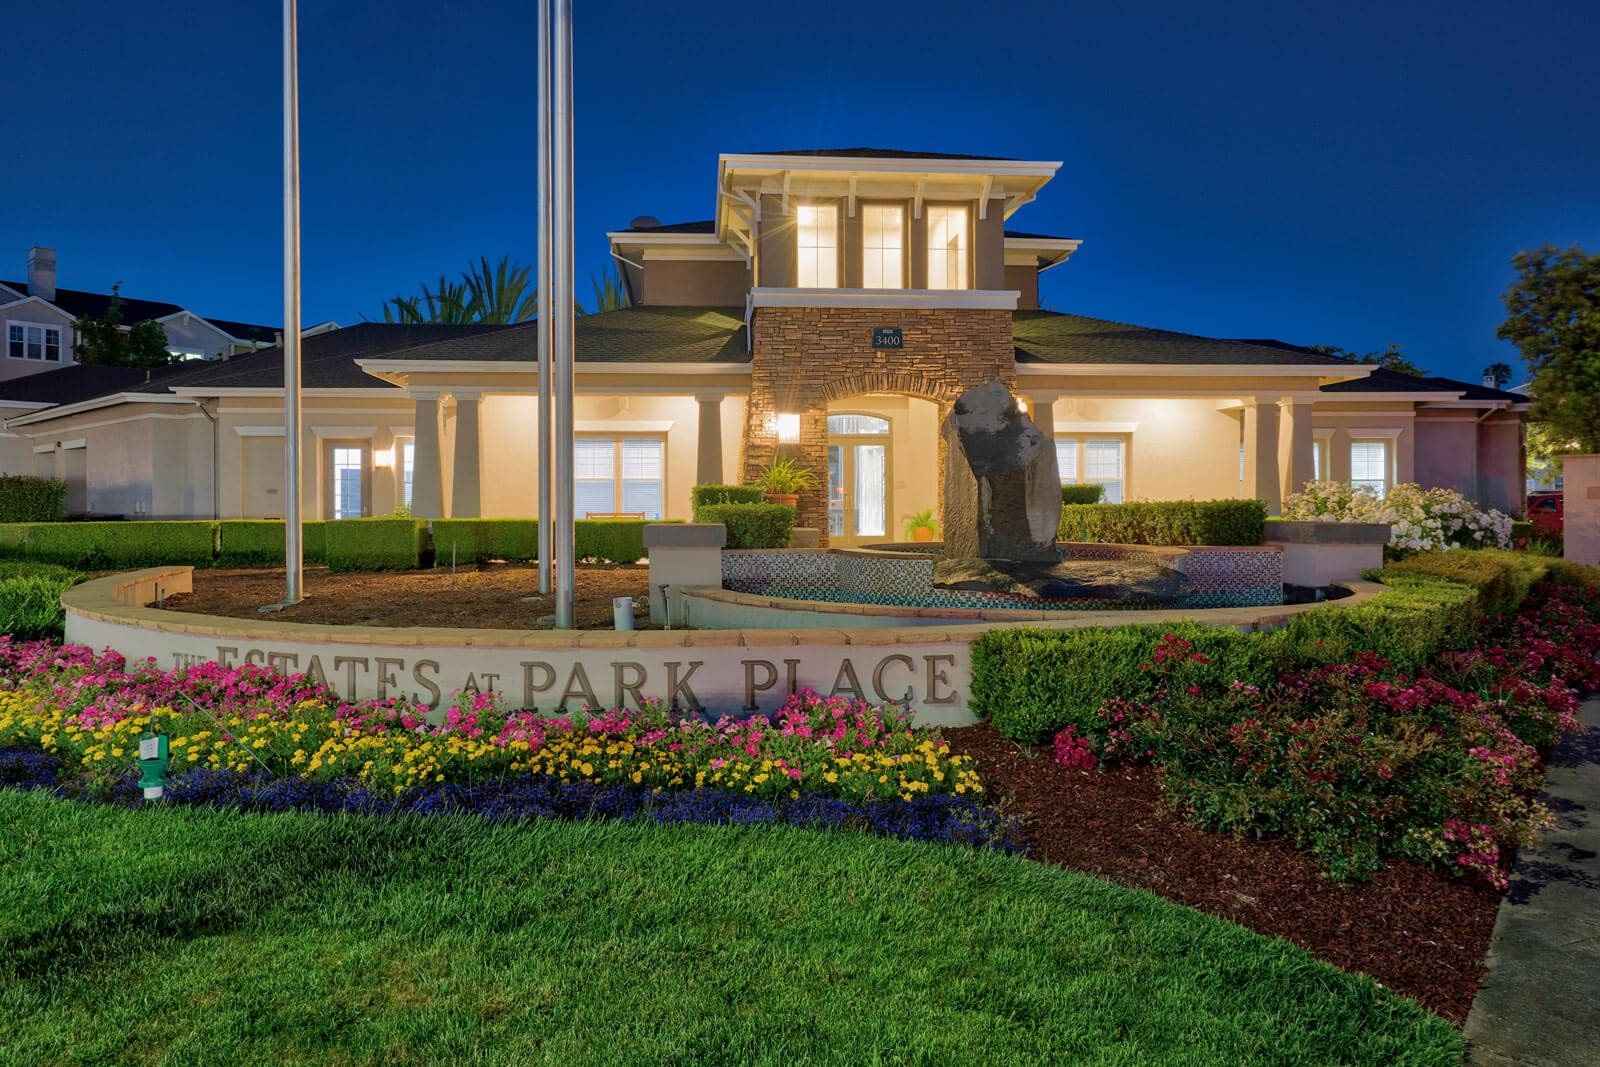 The Estates at Park Place